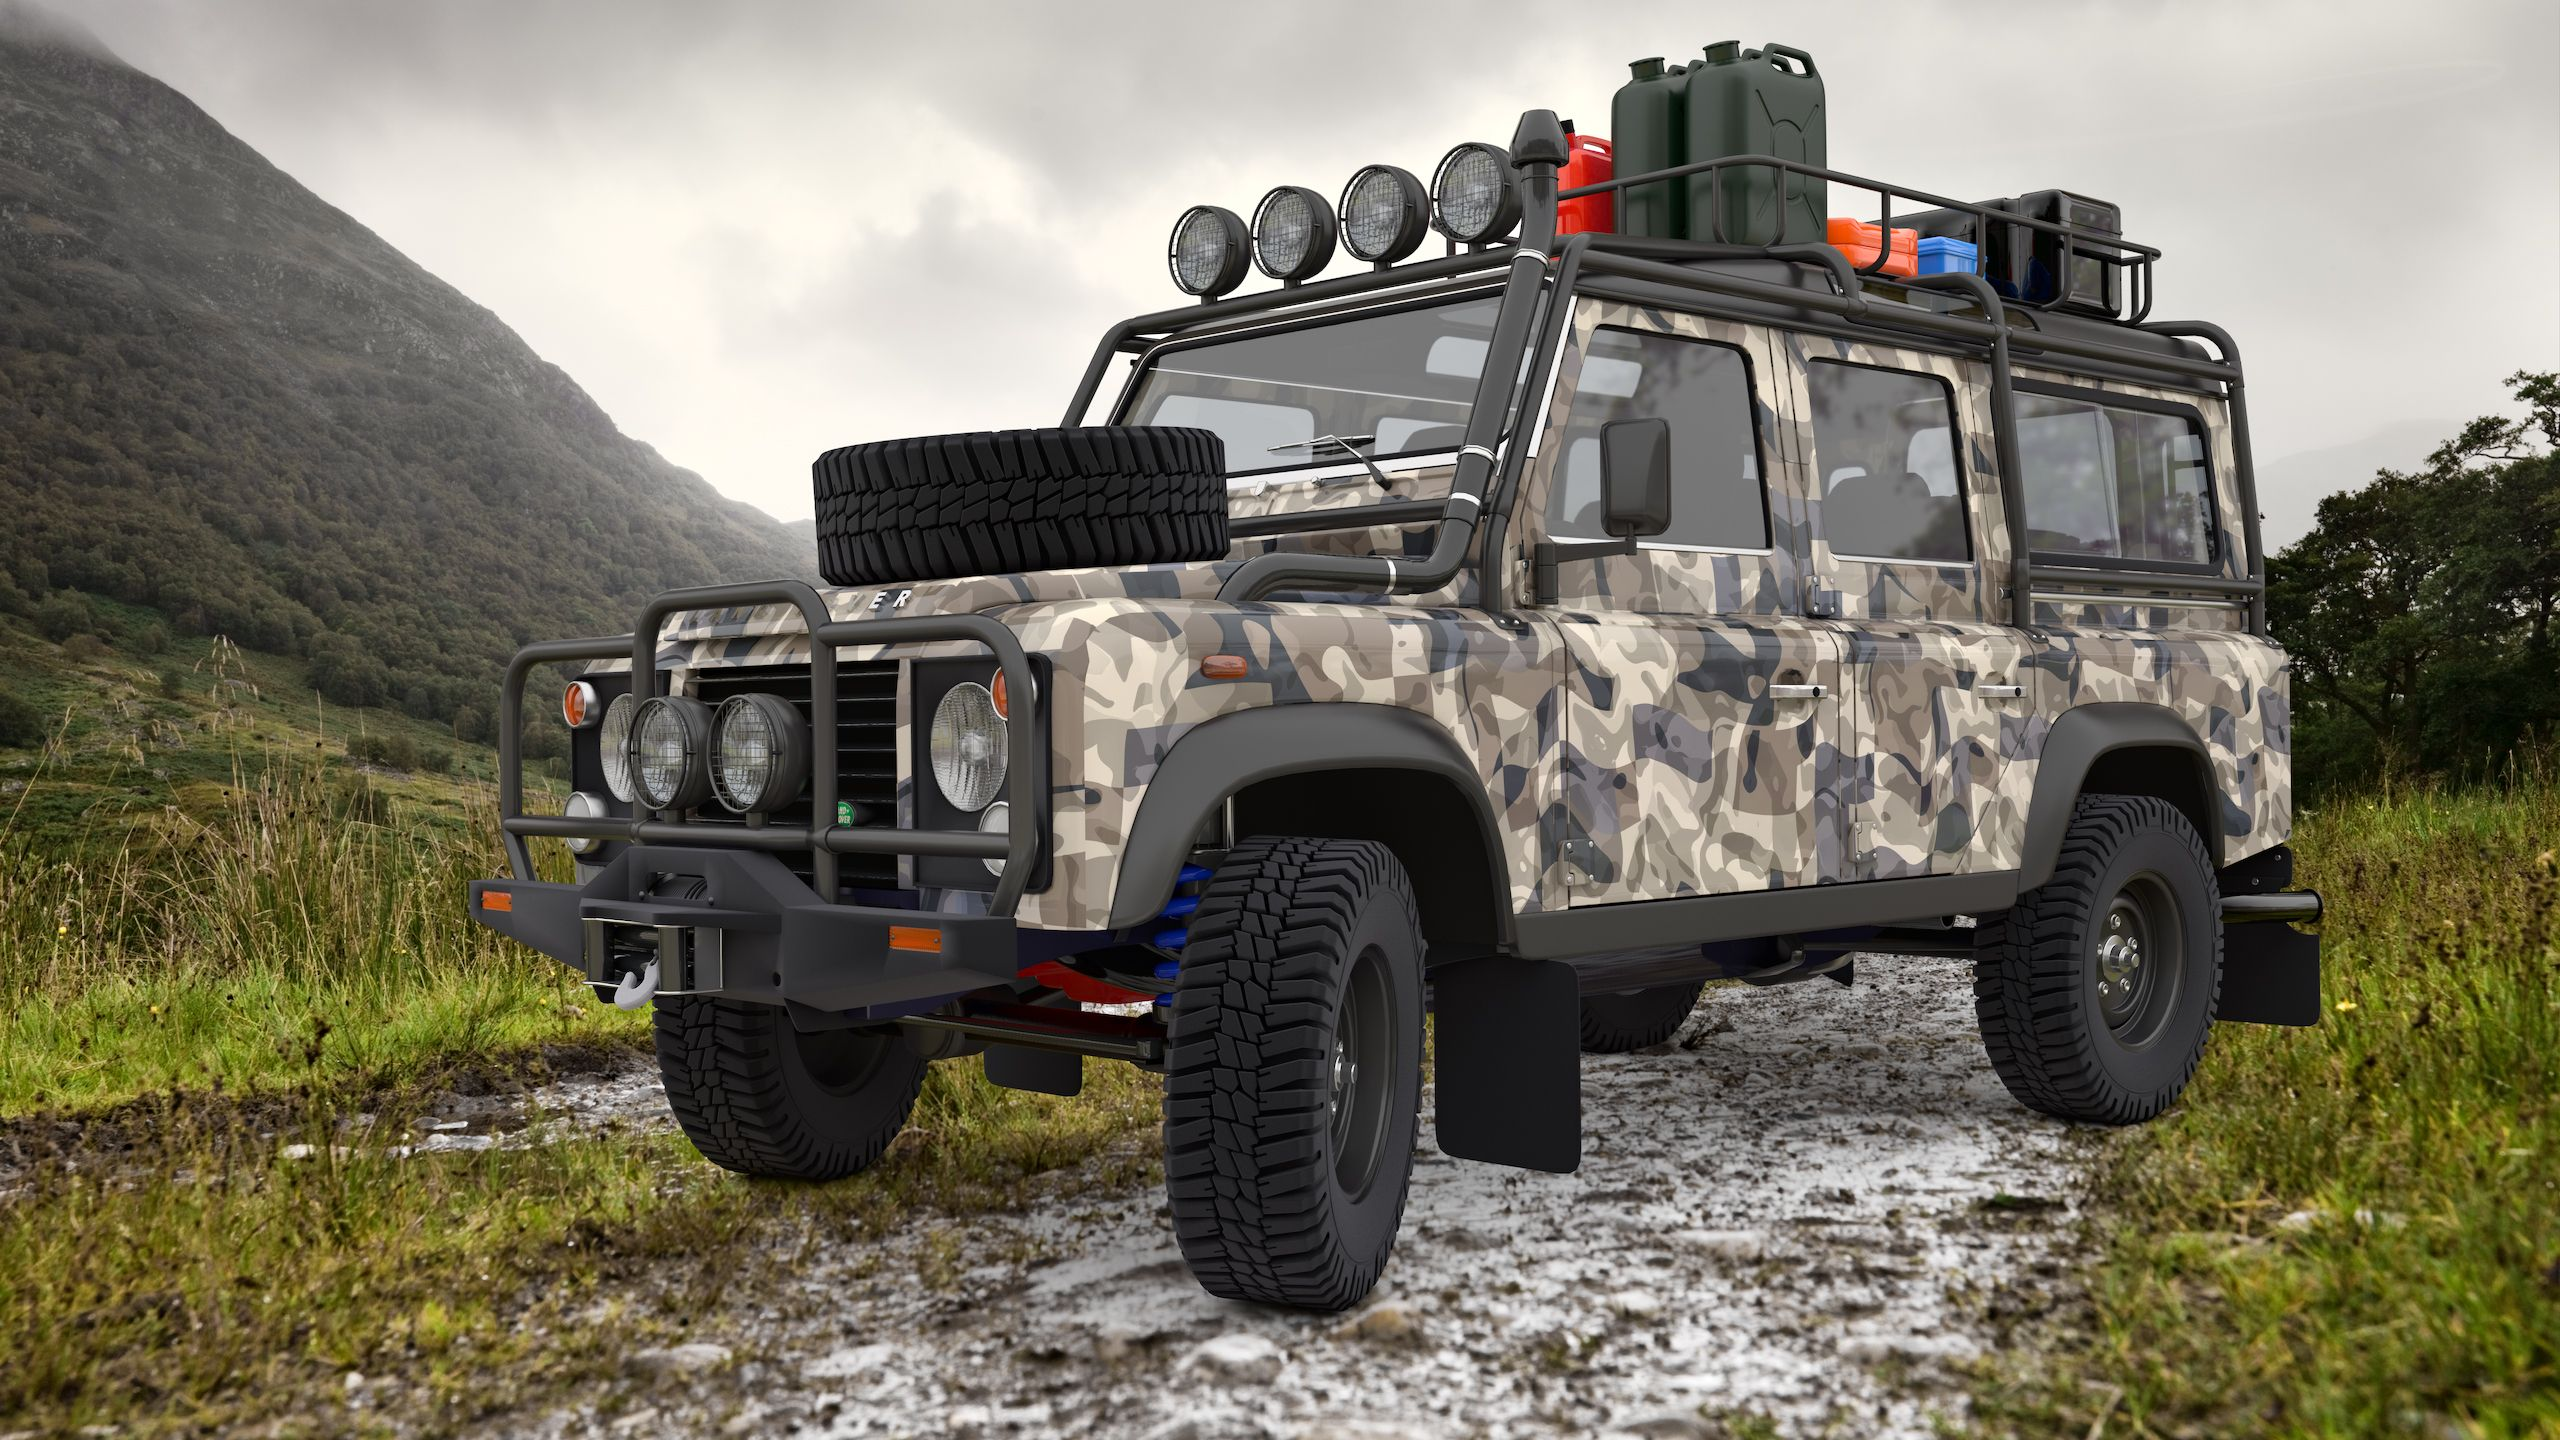 Land Rover Defender Expedition by SamCurryviantart on